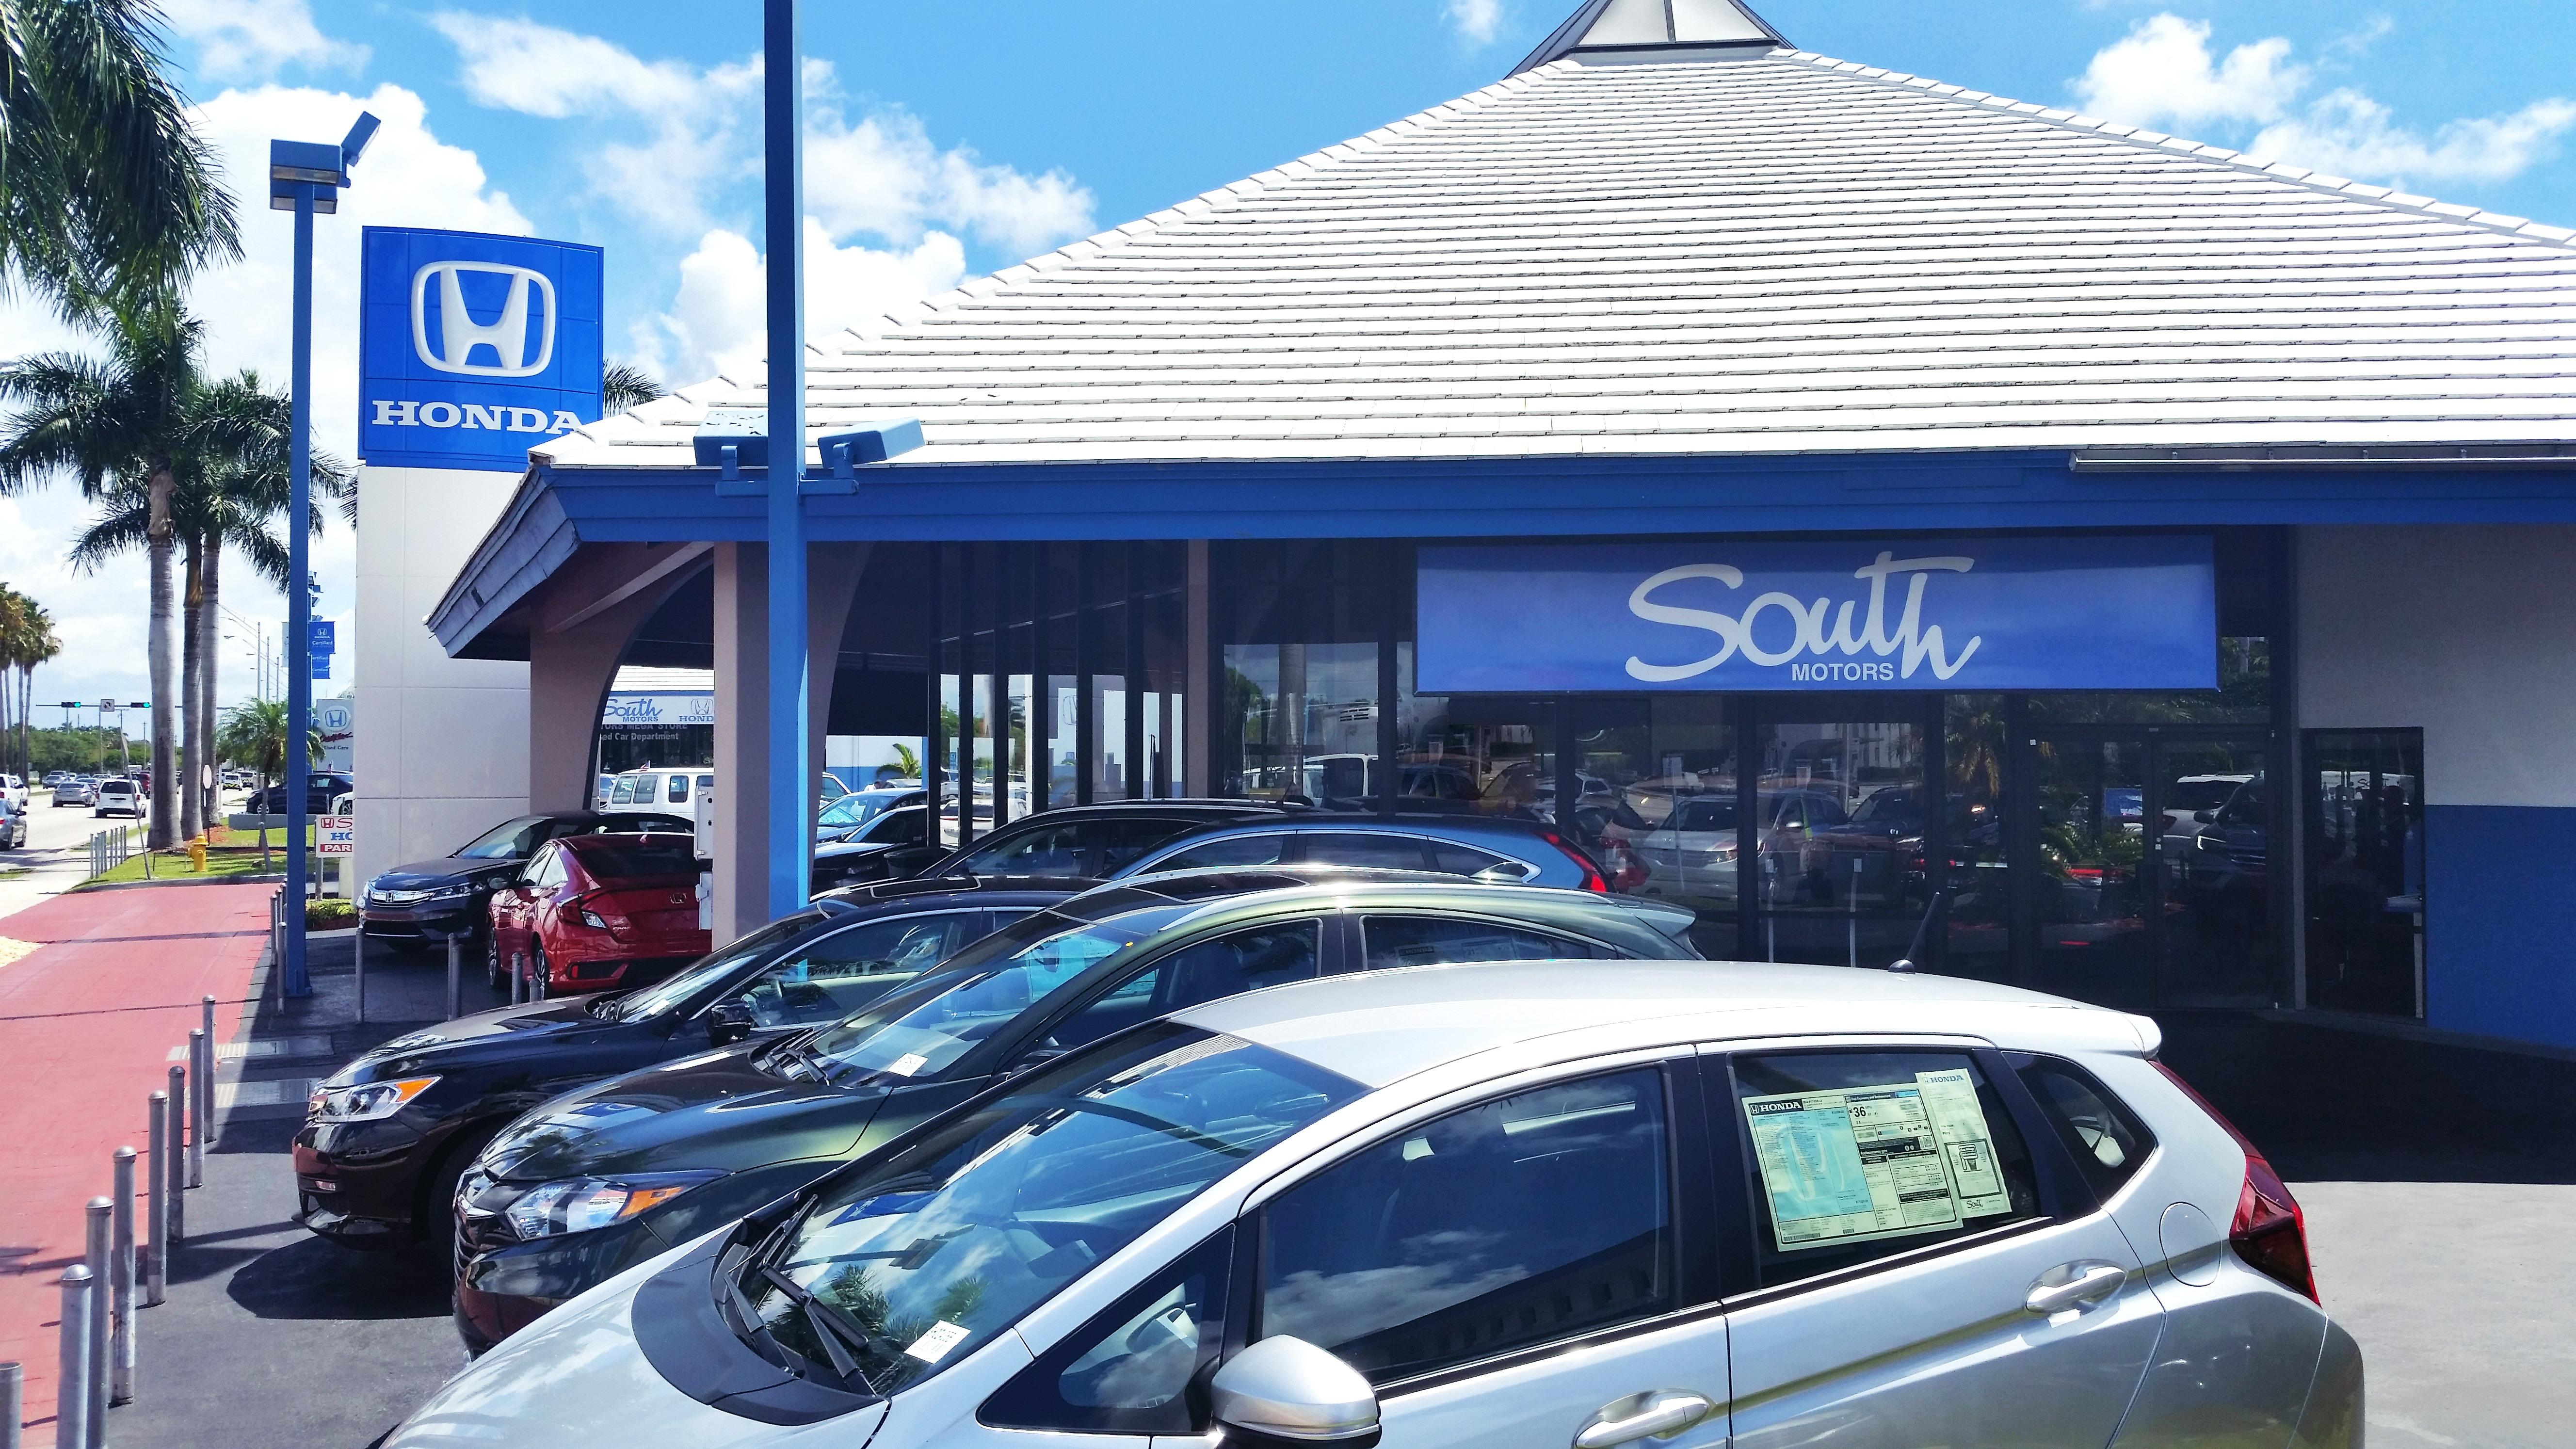 south motors honda at 16165 south dixie hwy miami fl on fave. Black Bedroom Furniture Sets. Home Design Ideas